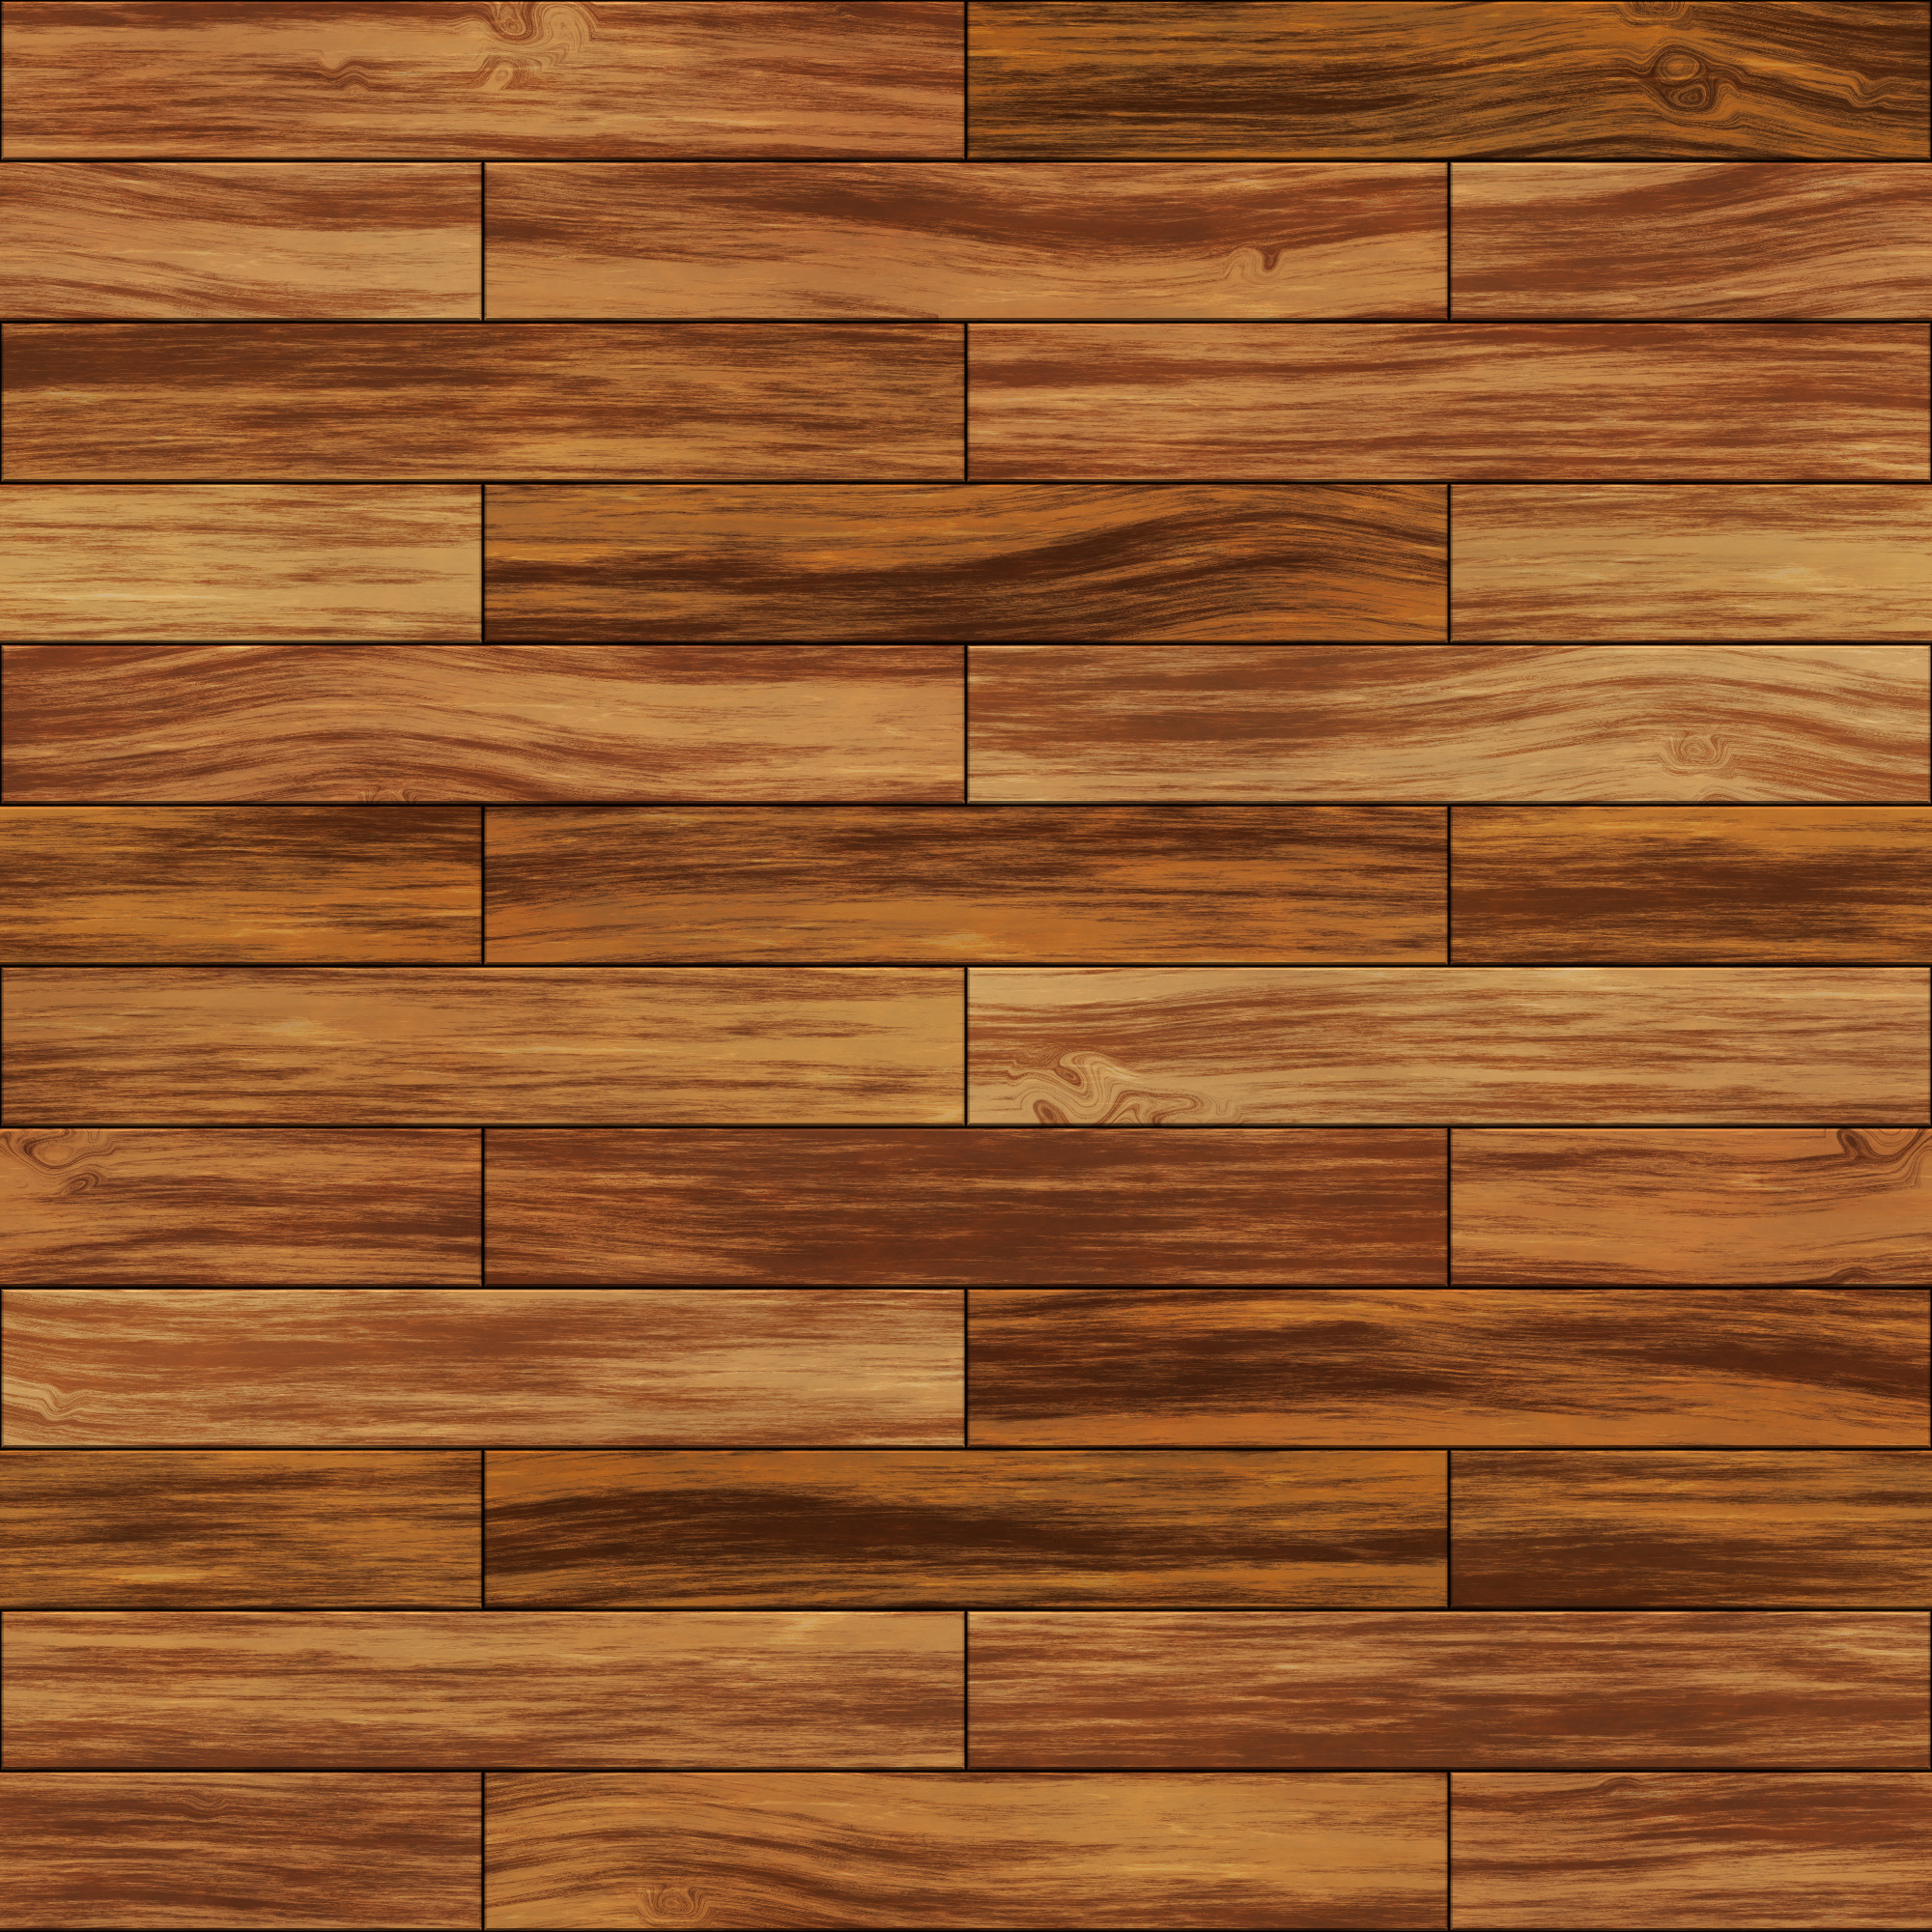 wood plank flooring seamless background wood planks 1 CDHFHLP